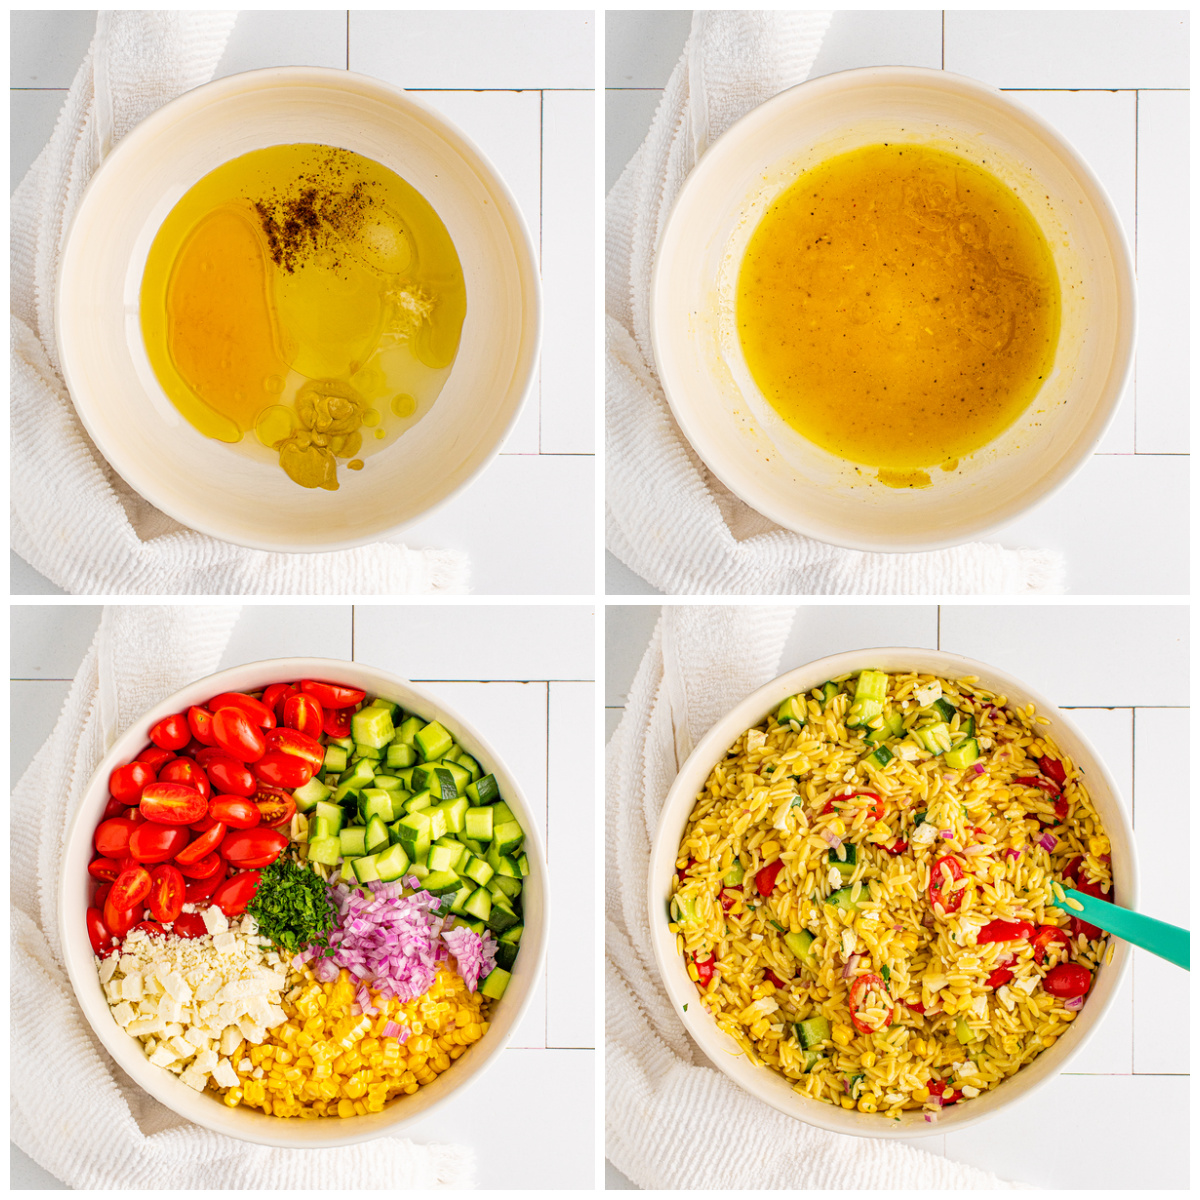 Step by step photos on how to make Orzo Pasta Salad